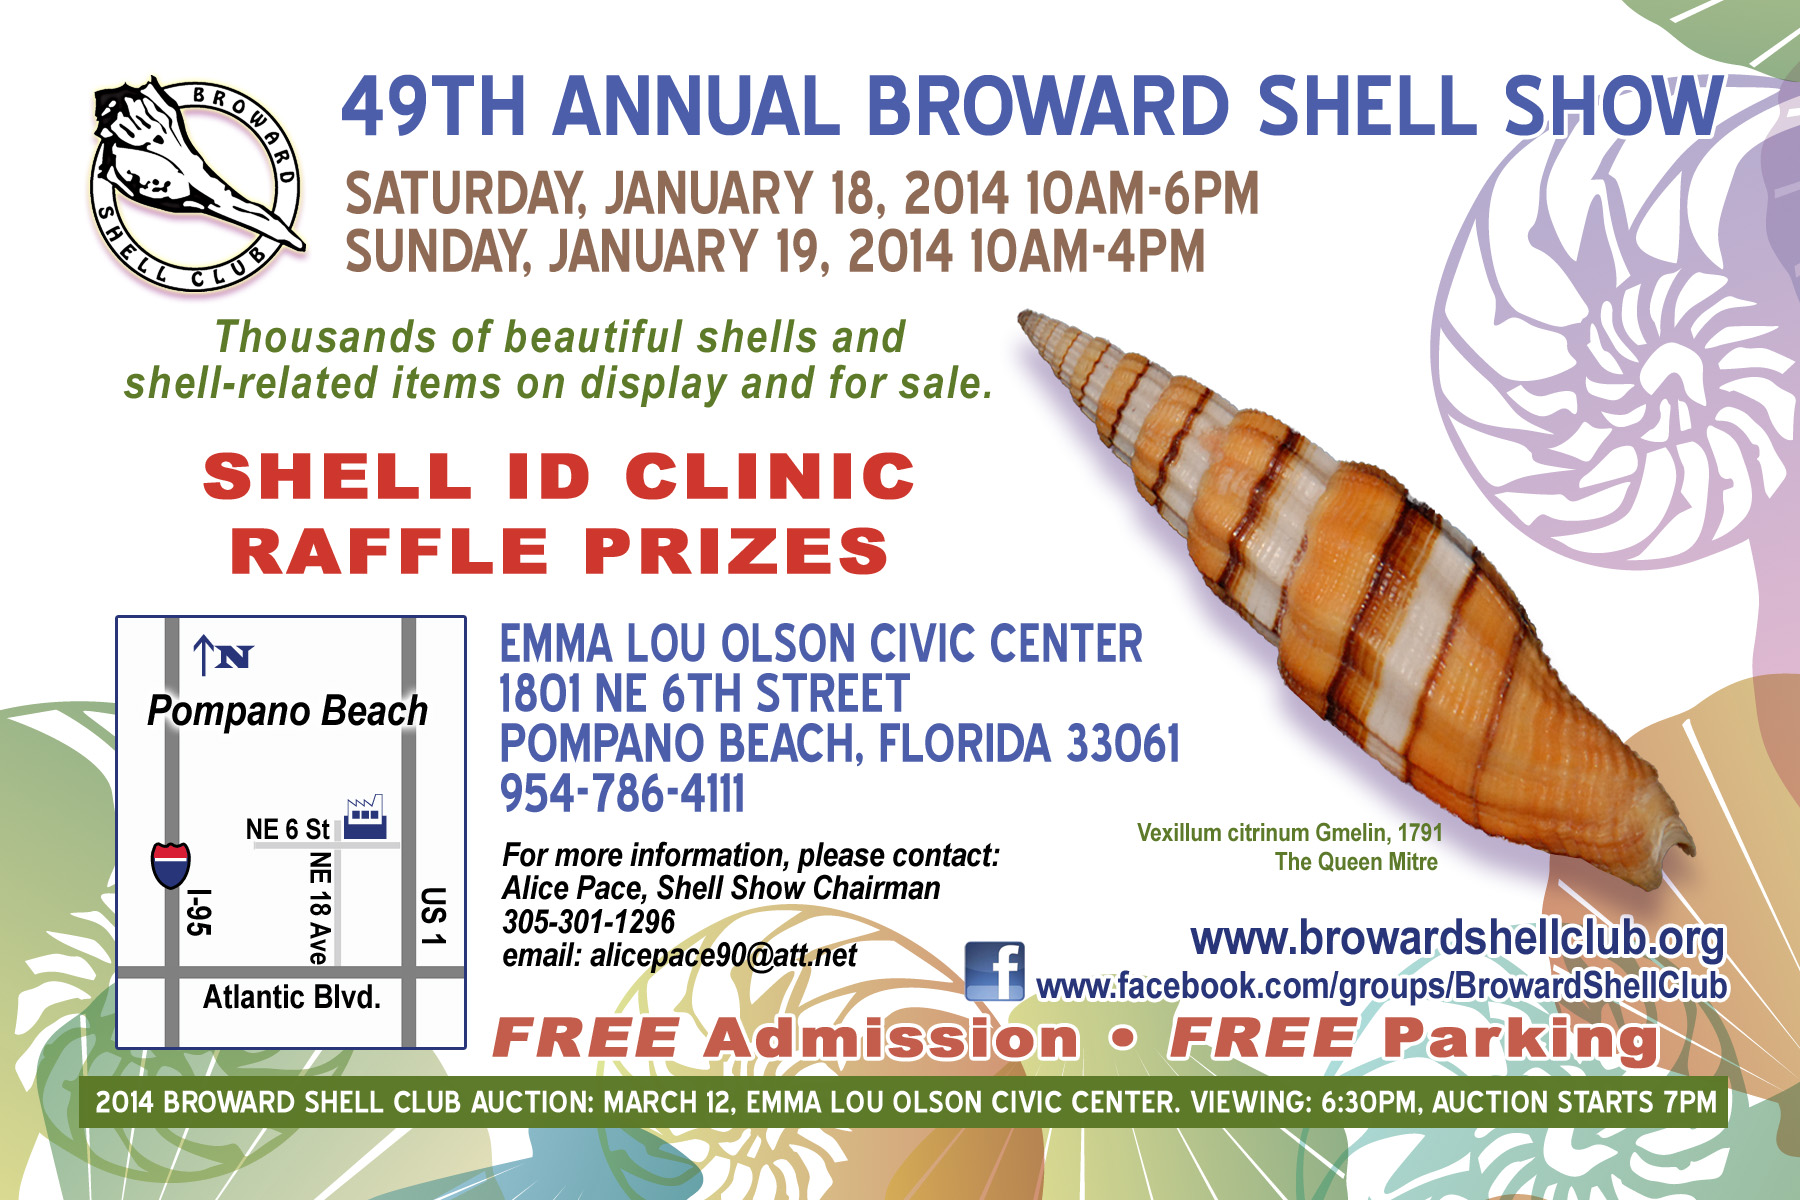 2014 SHELL SHOW SET FOR JANUARY 18 & 19 AT EMMA LOU OLSON CIVICCENTER